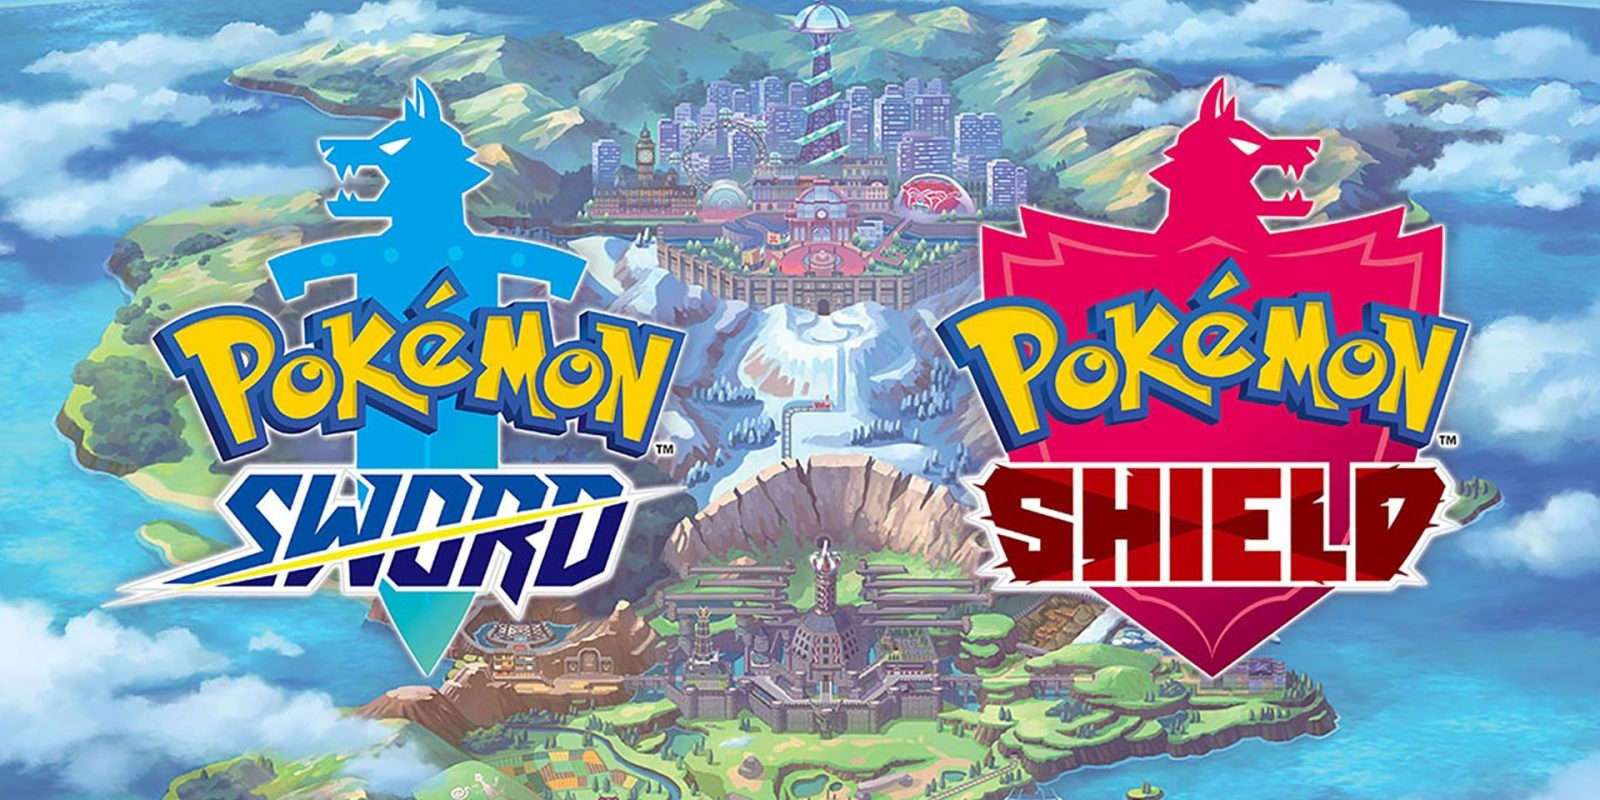 Pokemon Sword And Shield Differences 9to5toys